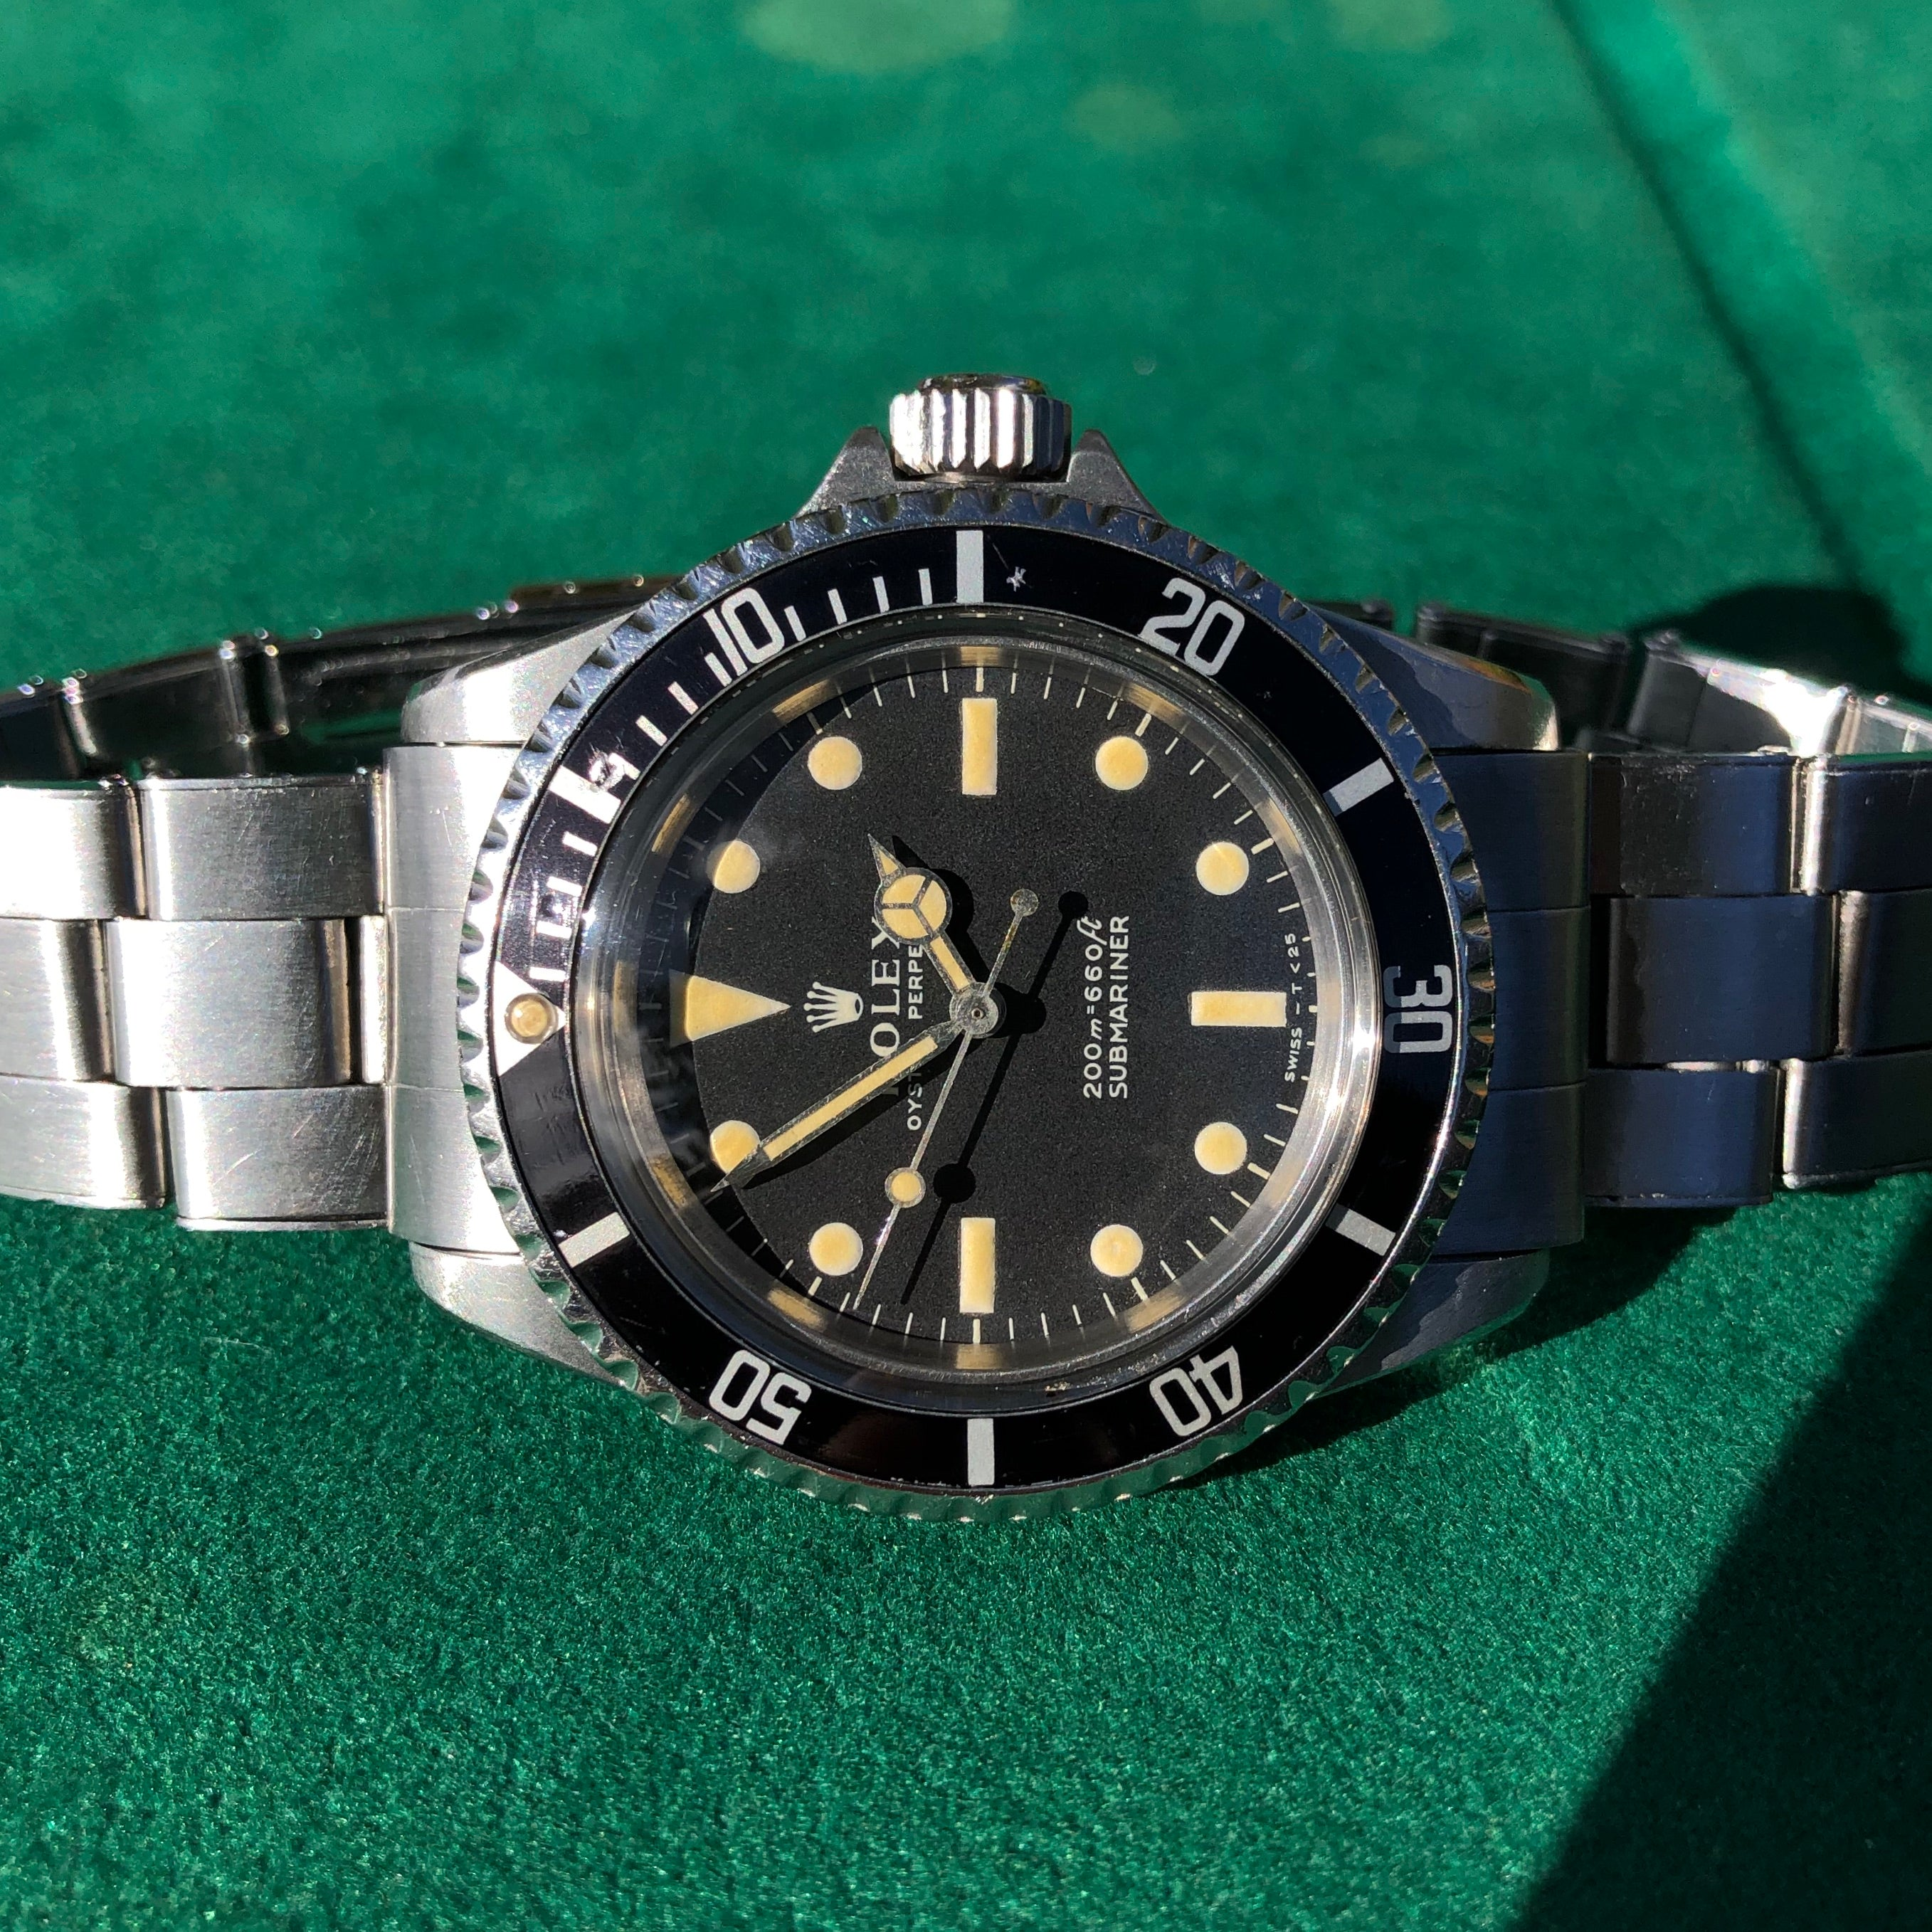 Vintage Rolex Submariner 5513 Meters First Dial Matte Black Wristwatch Circa 1968 Box Papers - Hashtag Watch Company